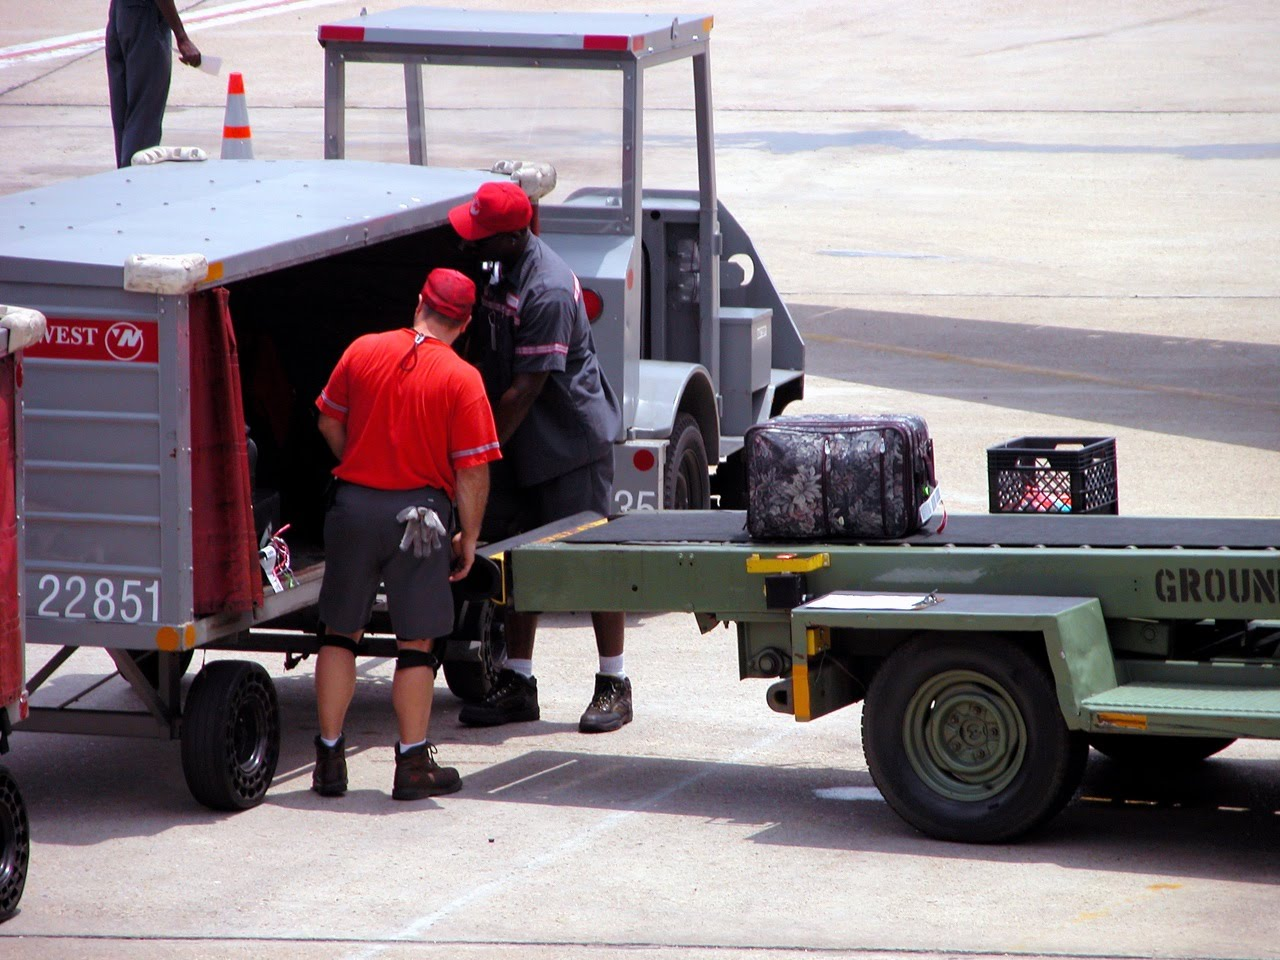 Airline regulations, Transporting and handling of luggage